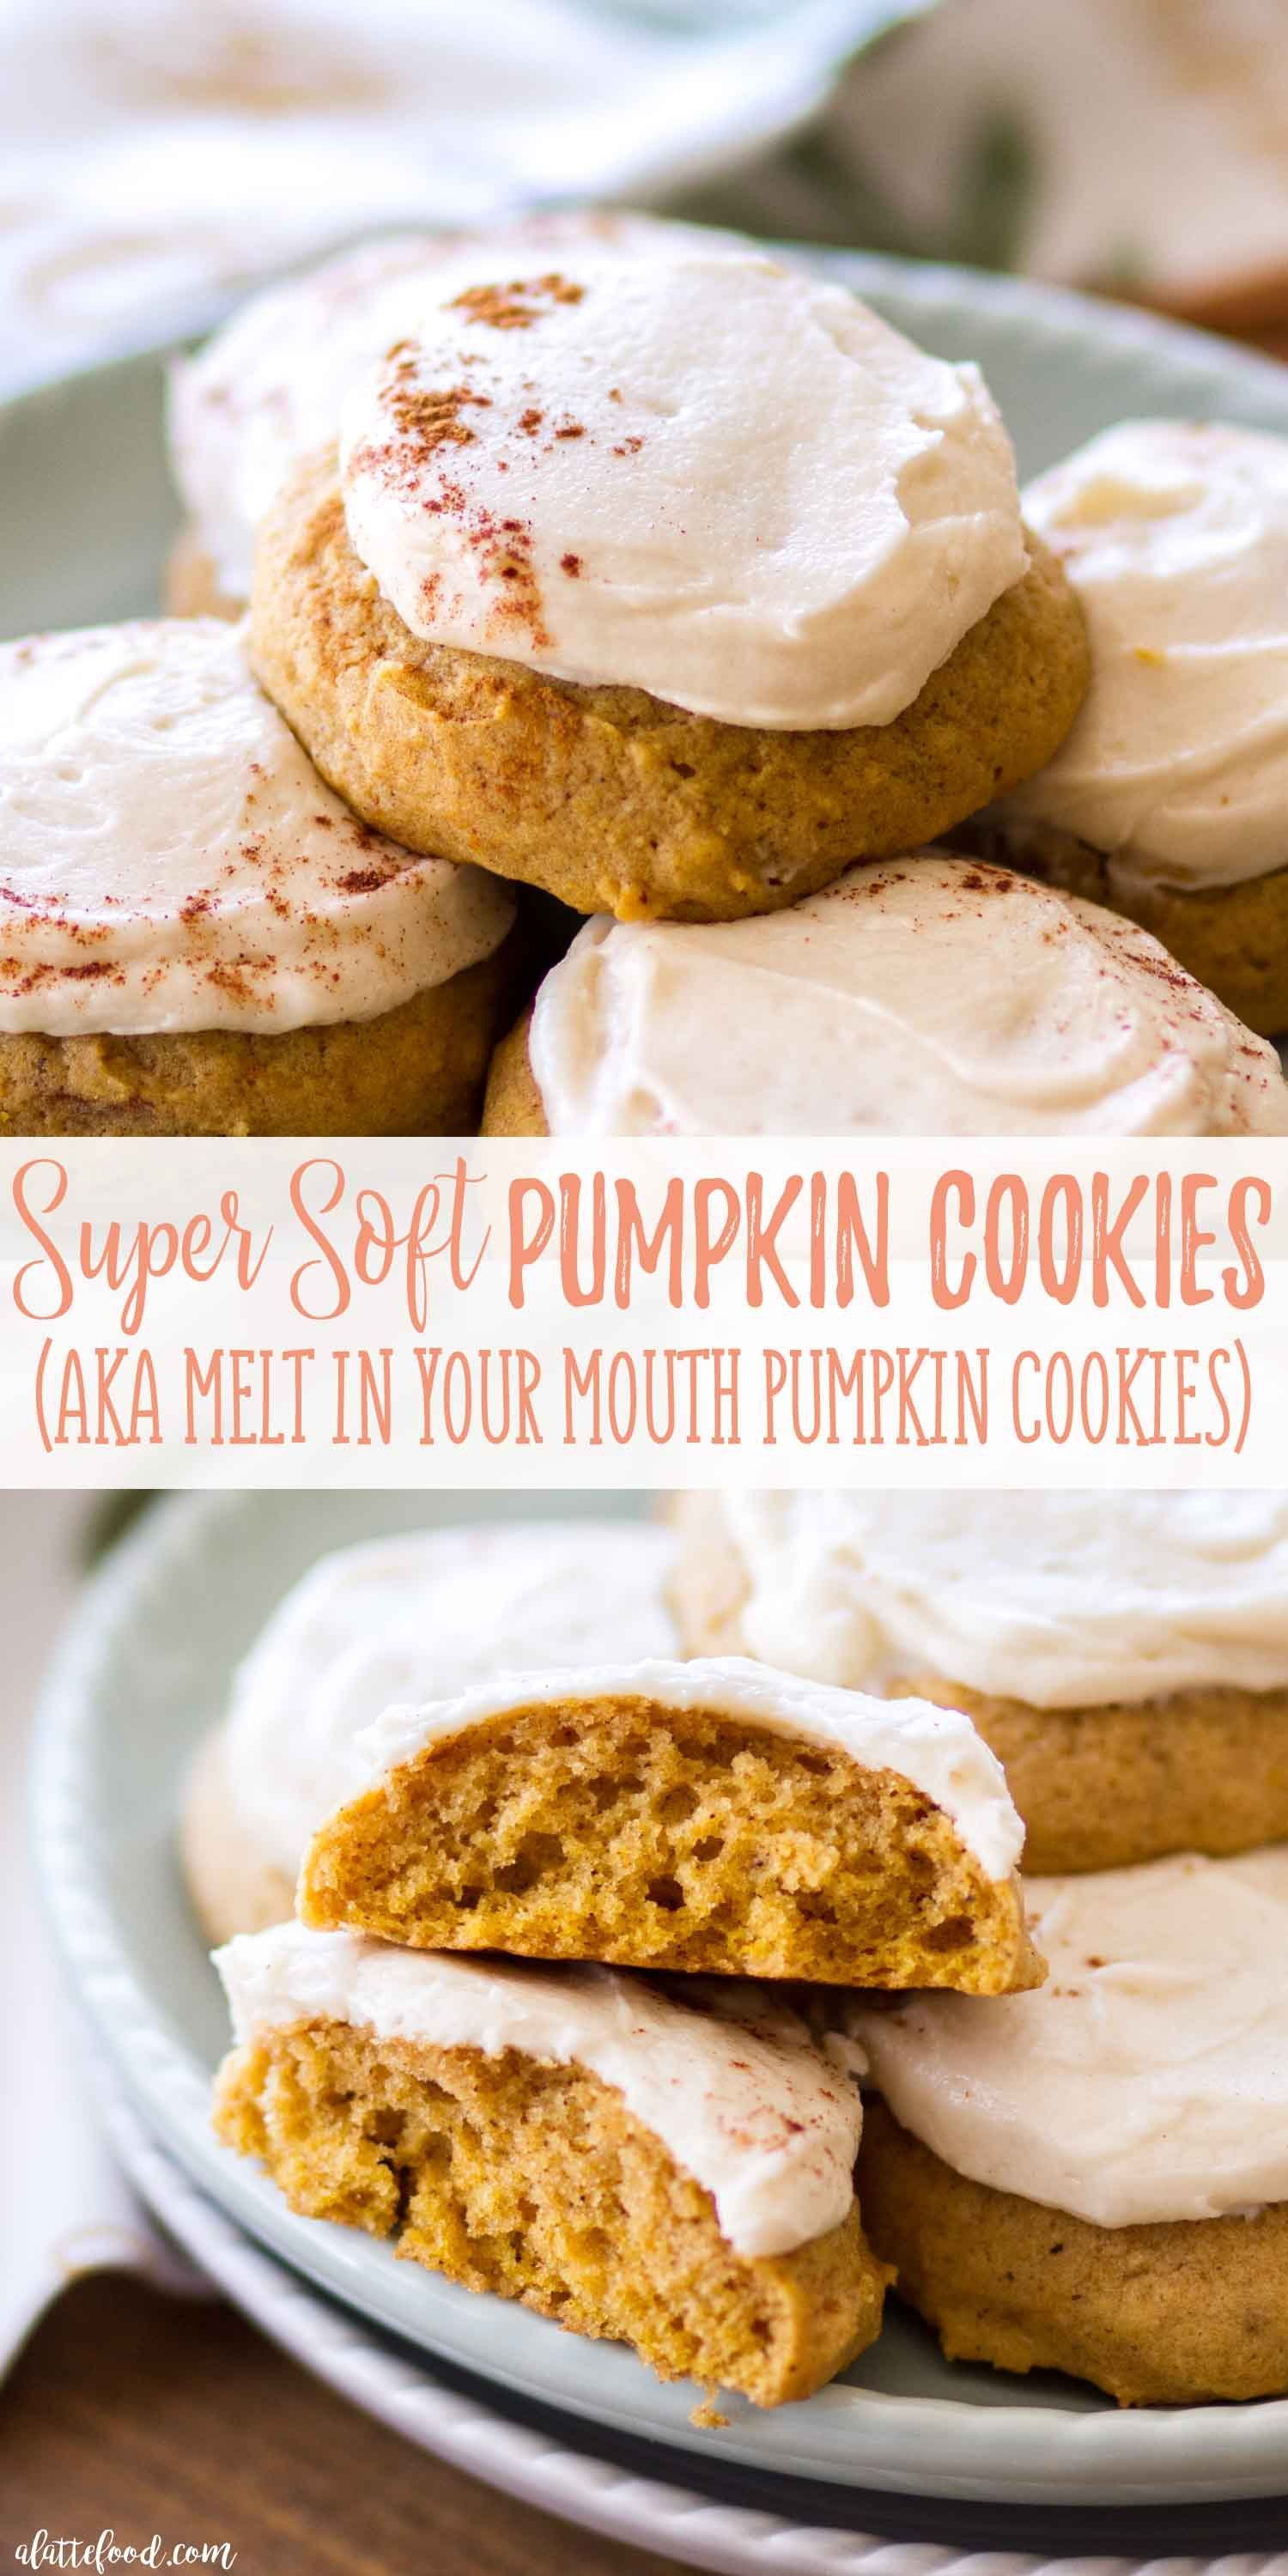 These super Soft Pumpkin Cookies with a maple frosting are one of my favorite fall desserts These homemade pumpkin cookies are full of sweet pumpkin pie spices and topped...